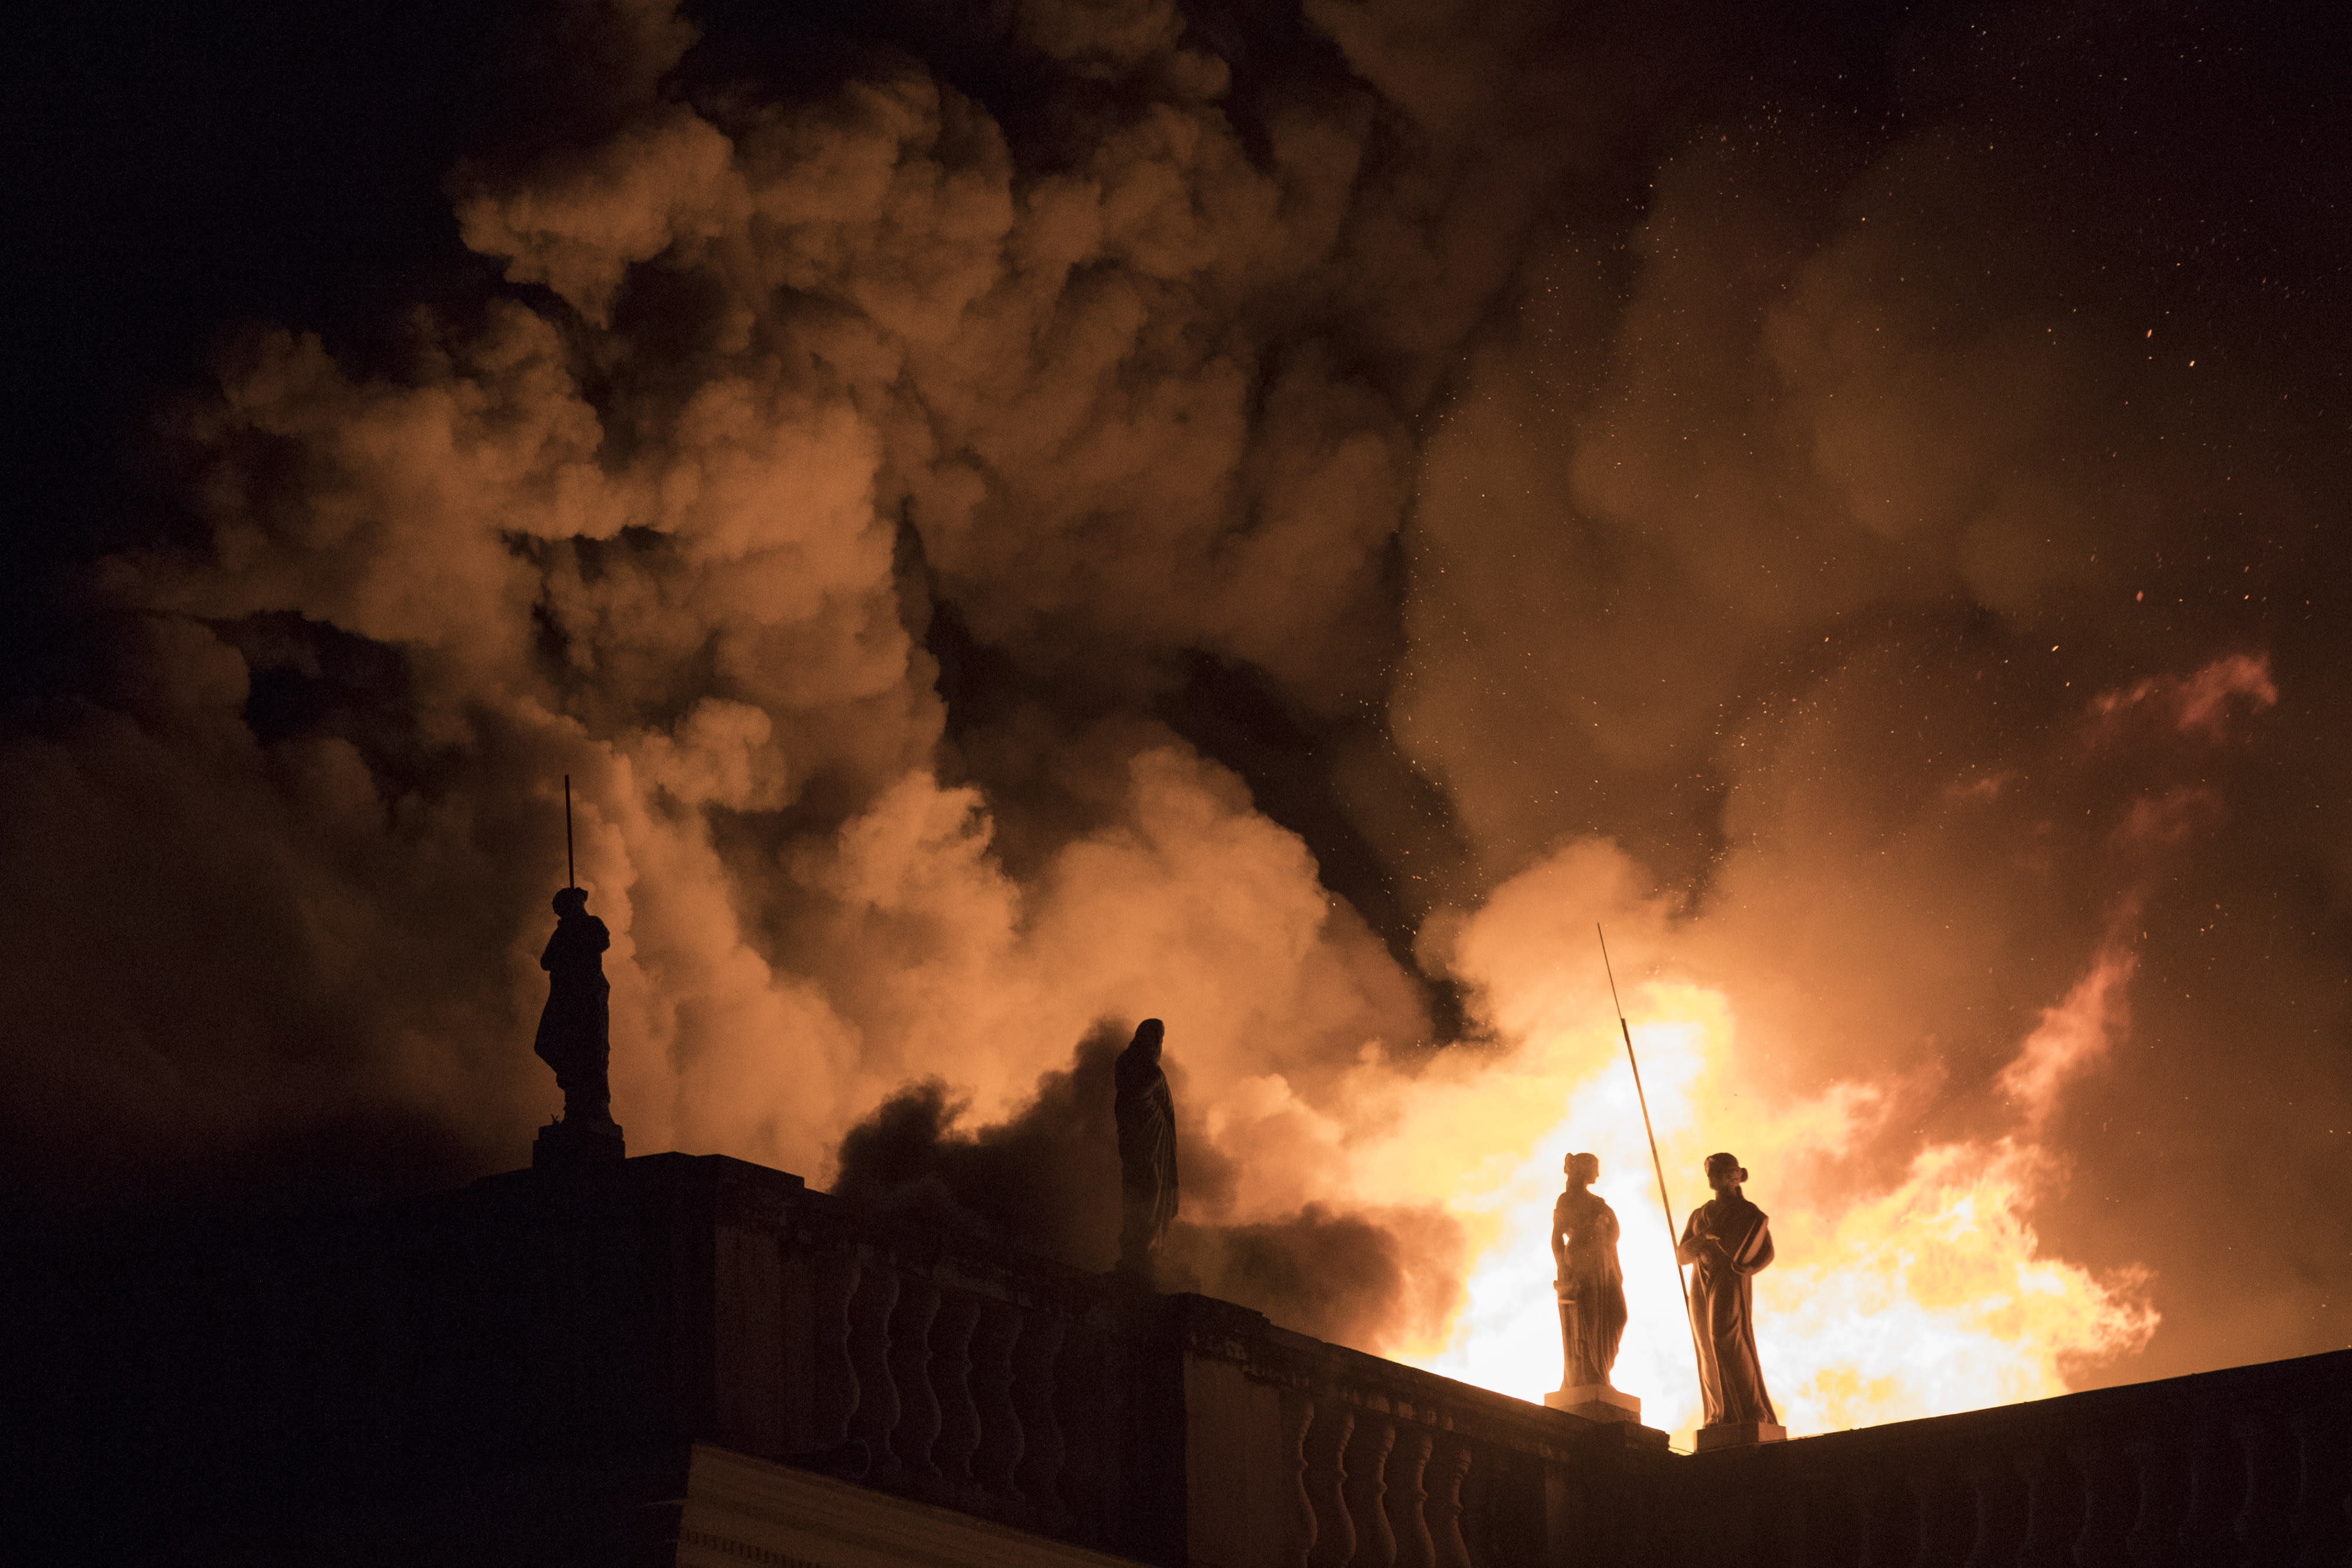 <p> Flames engulf the 200-year-old National Museum of Brazil, in Rio de Janeiro, Sunday, Sept. 2, 2018. According to its website, the museum has thousands of items related to the history of Brazil and other countries. The museum is part of the Federal University of Rio de Janeiro. (AP Photo/Leo Correa) </p>